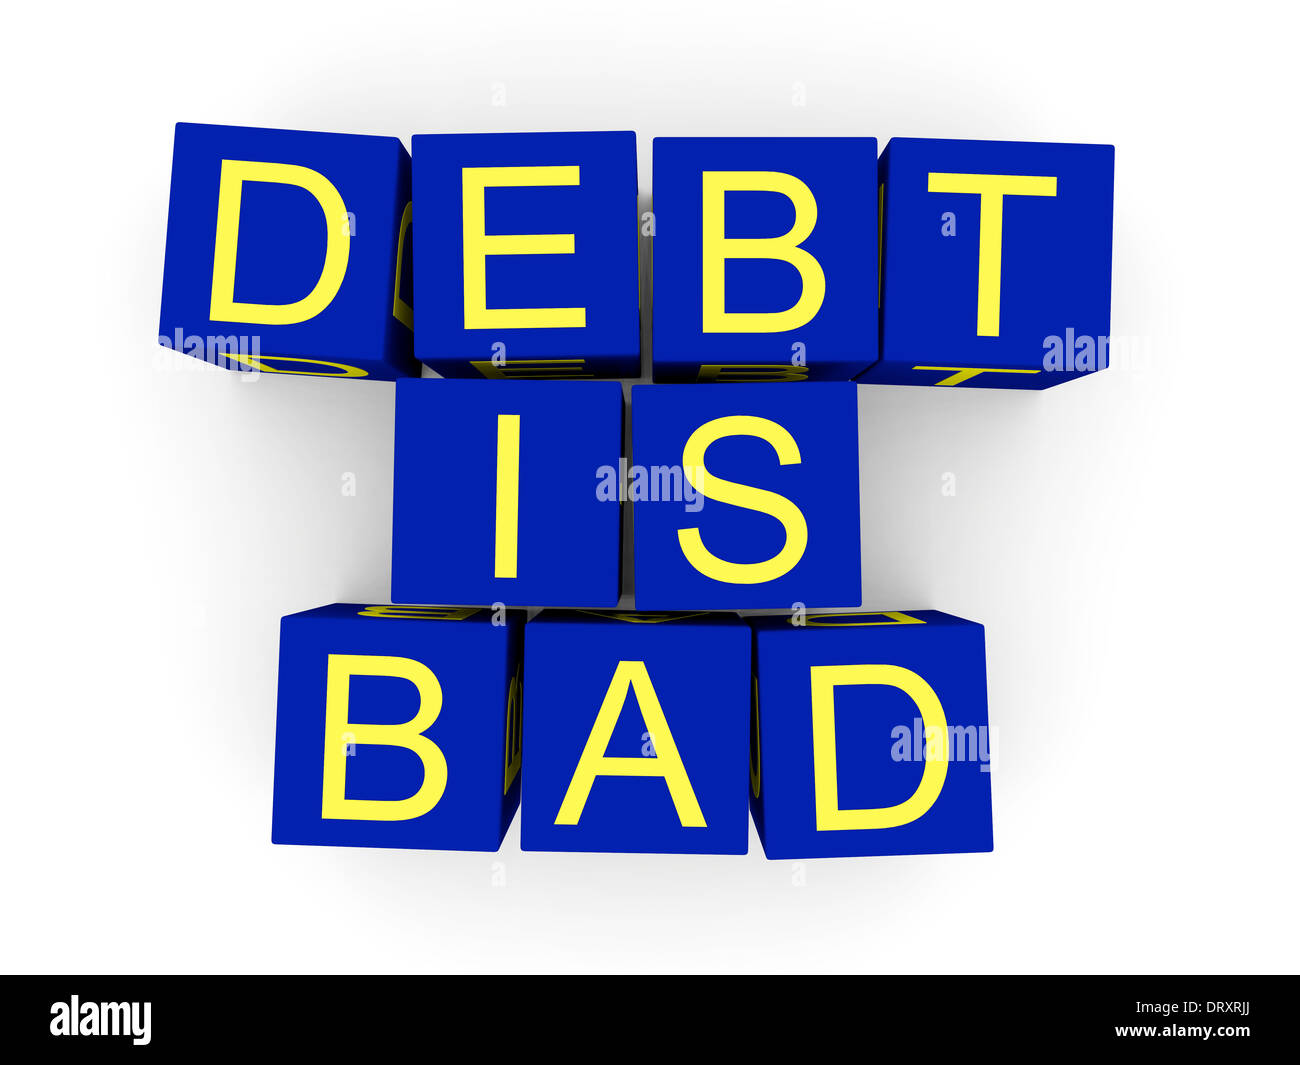 Debt is bad sign made of toy cubes - Stock Image